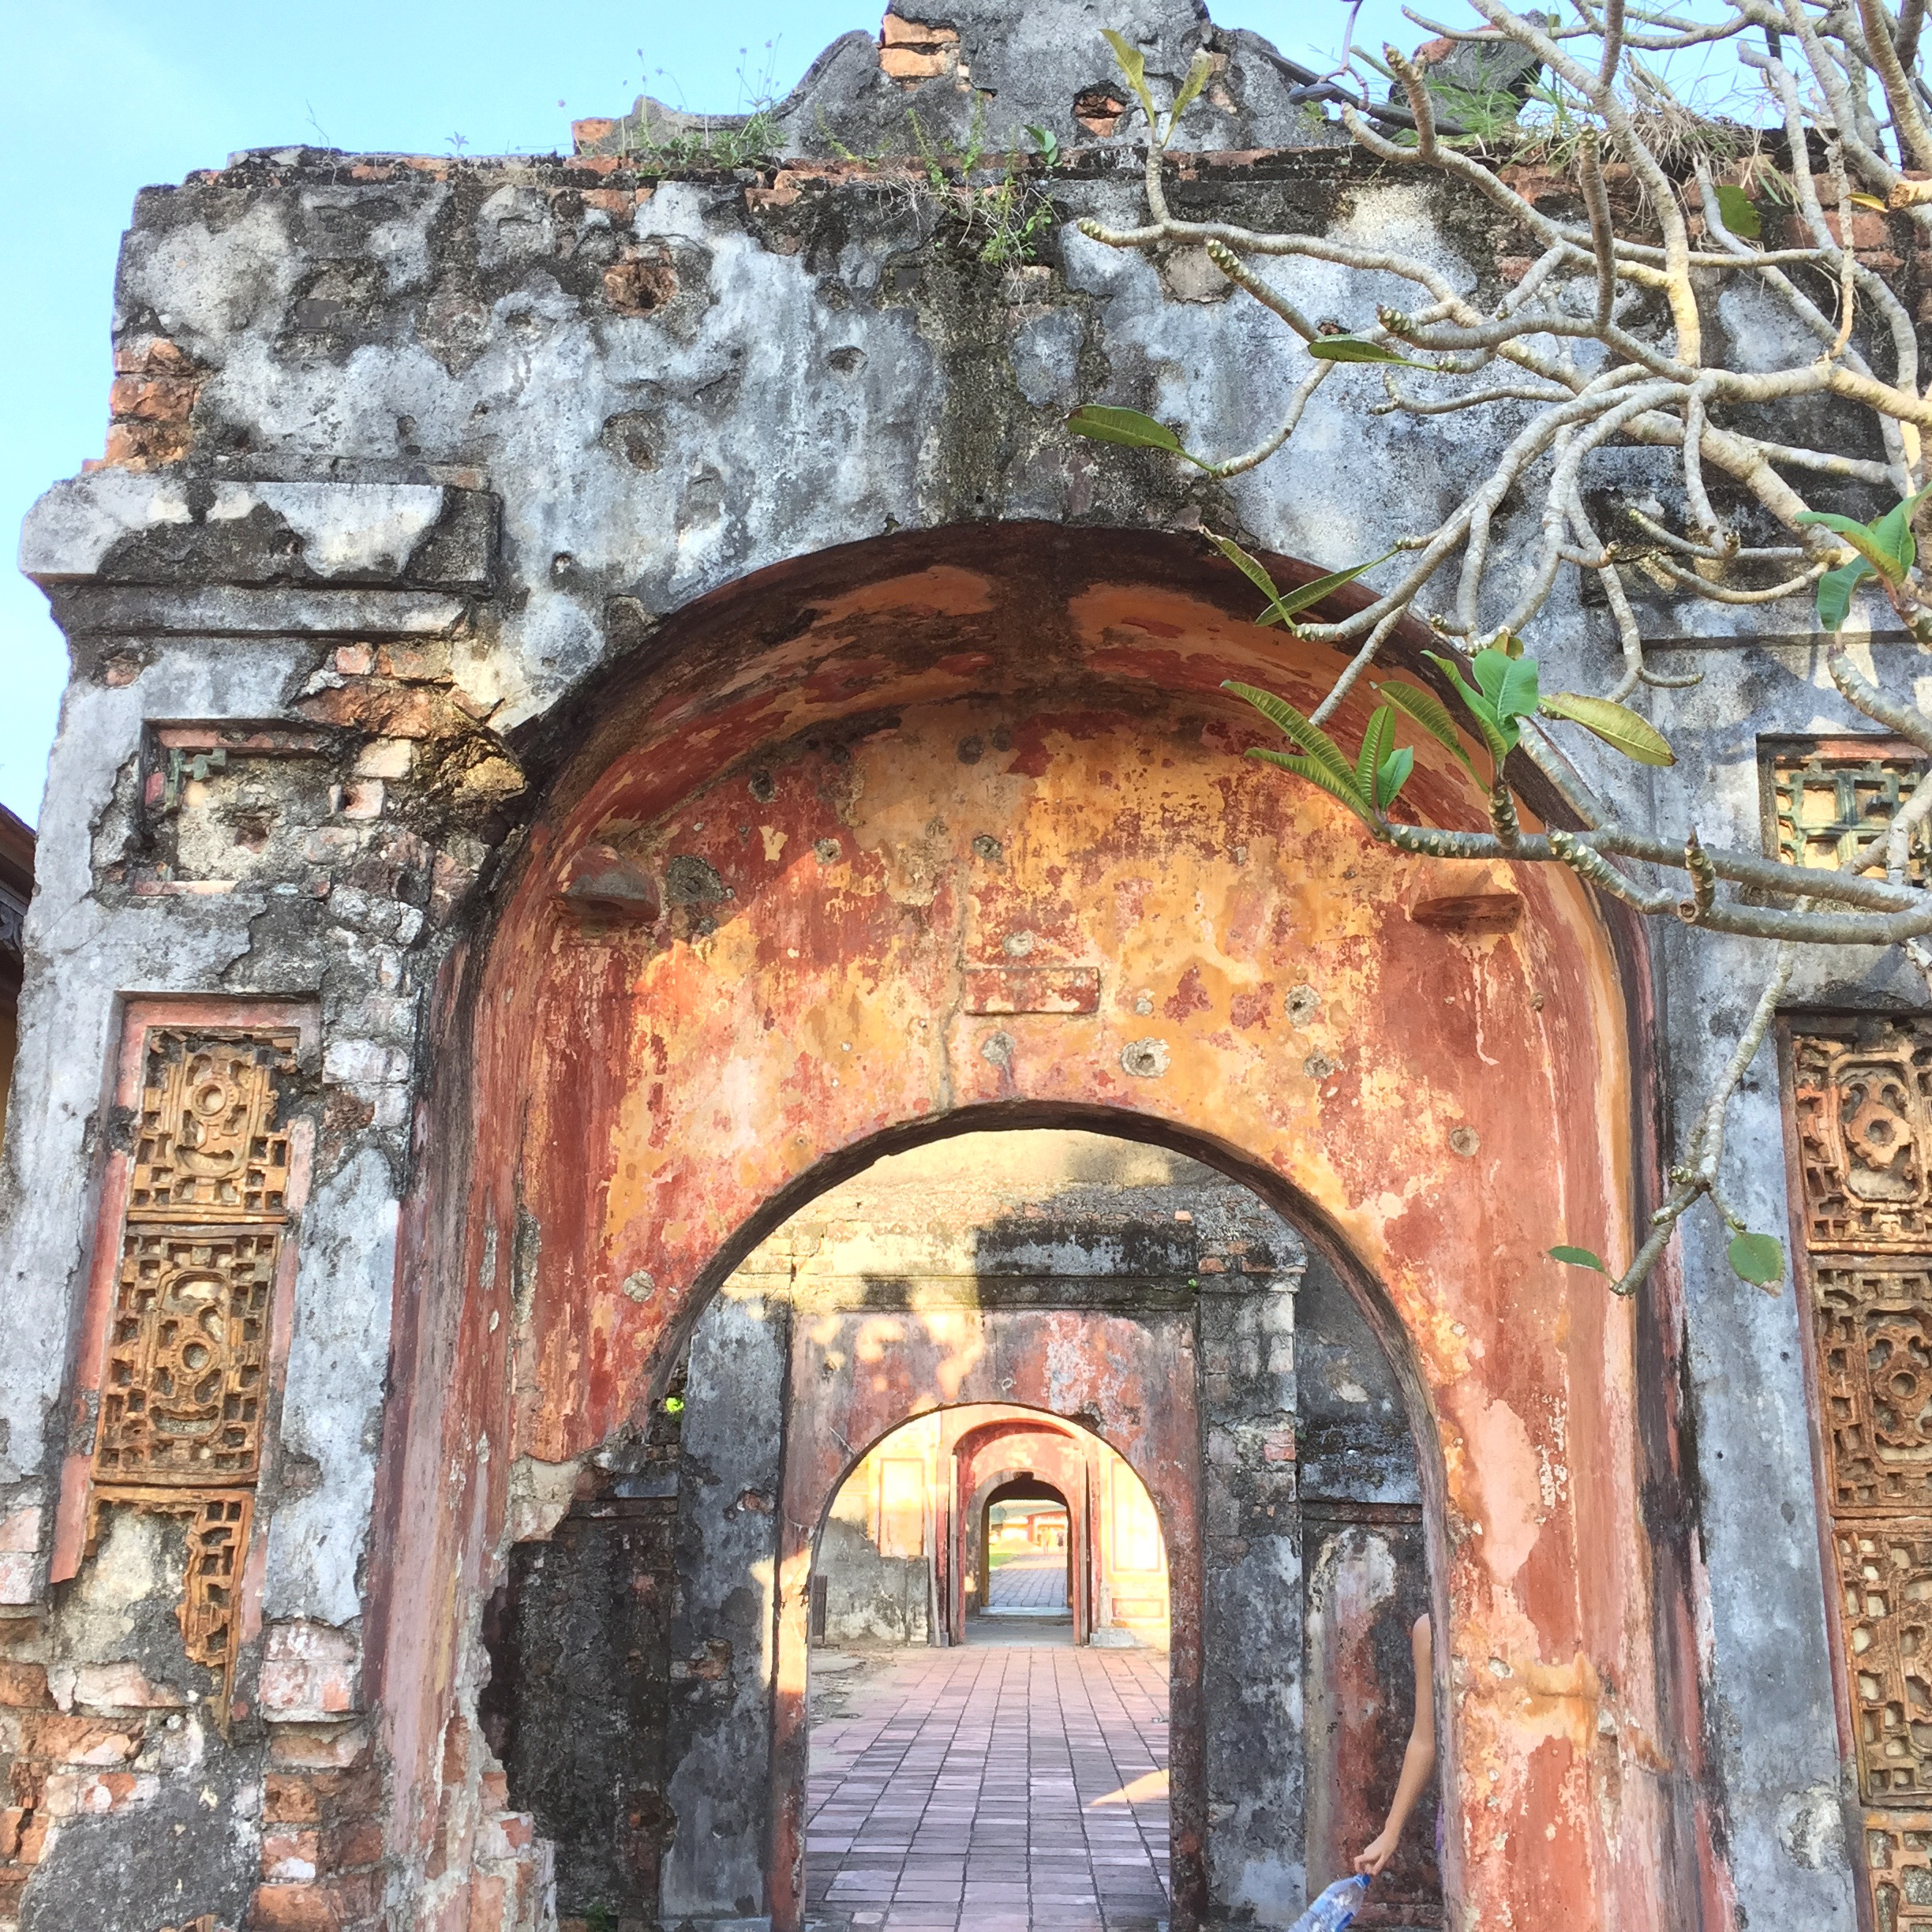 Ruins of the ancient Imperial City fortress in Hue, north Vietnam, heavily bombed by the U.S. during the Vietnam War. Restoration is still underway.